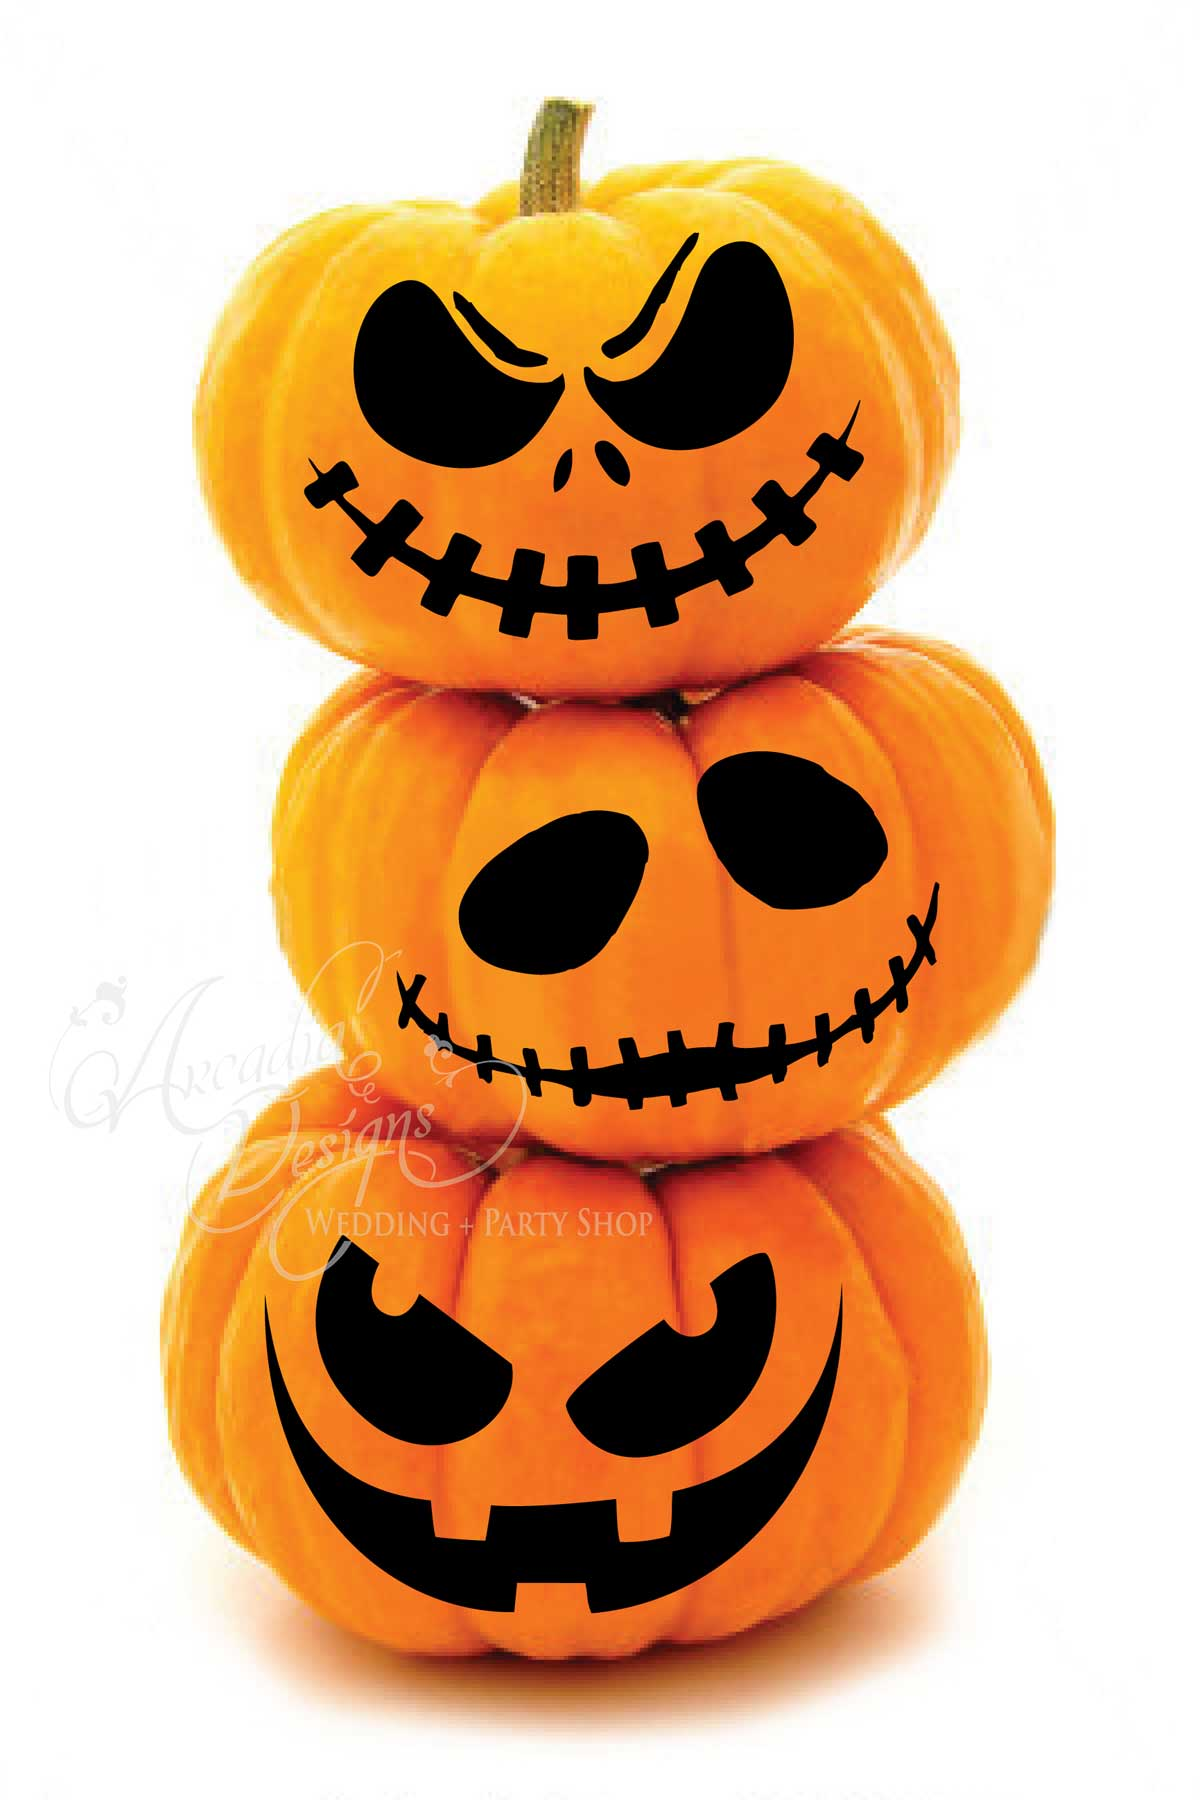 Halloween scary jack o lantern face pumpkin carving pattern